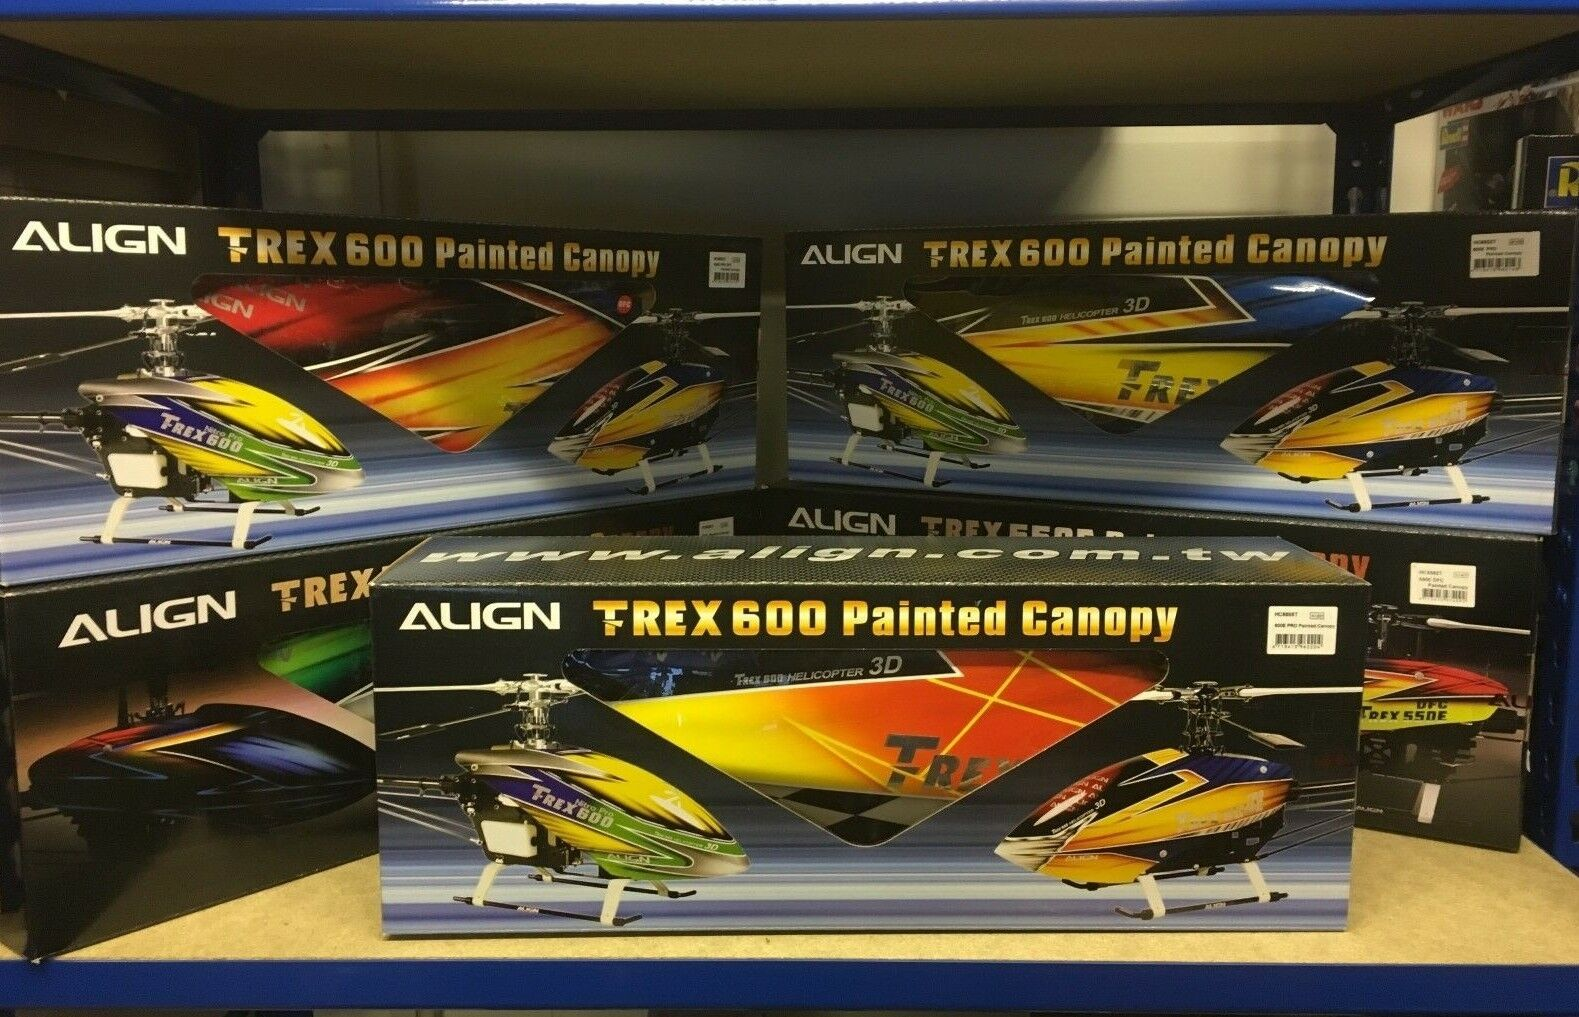 Genuine Align Trex Canopies - Choice of canopies available - RC Heli Spares